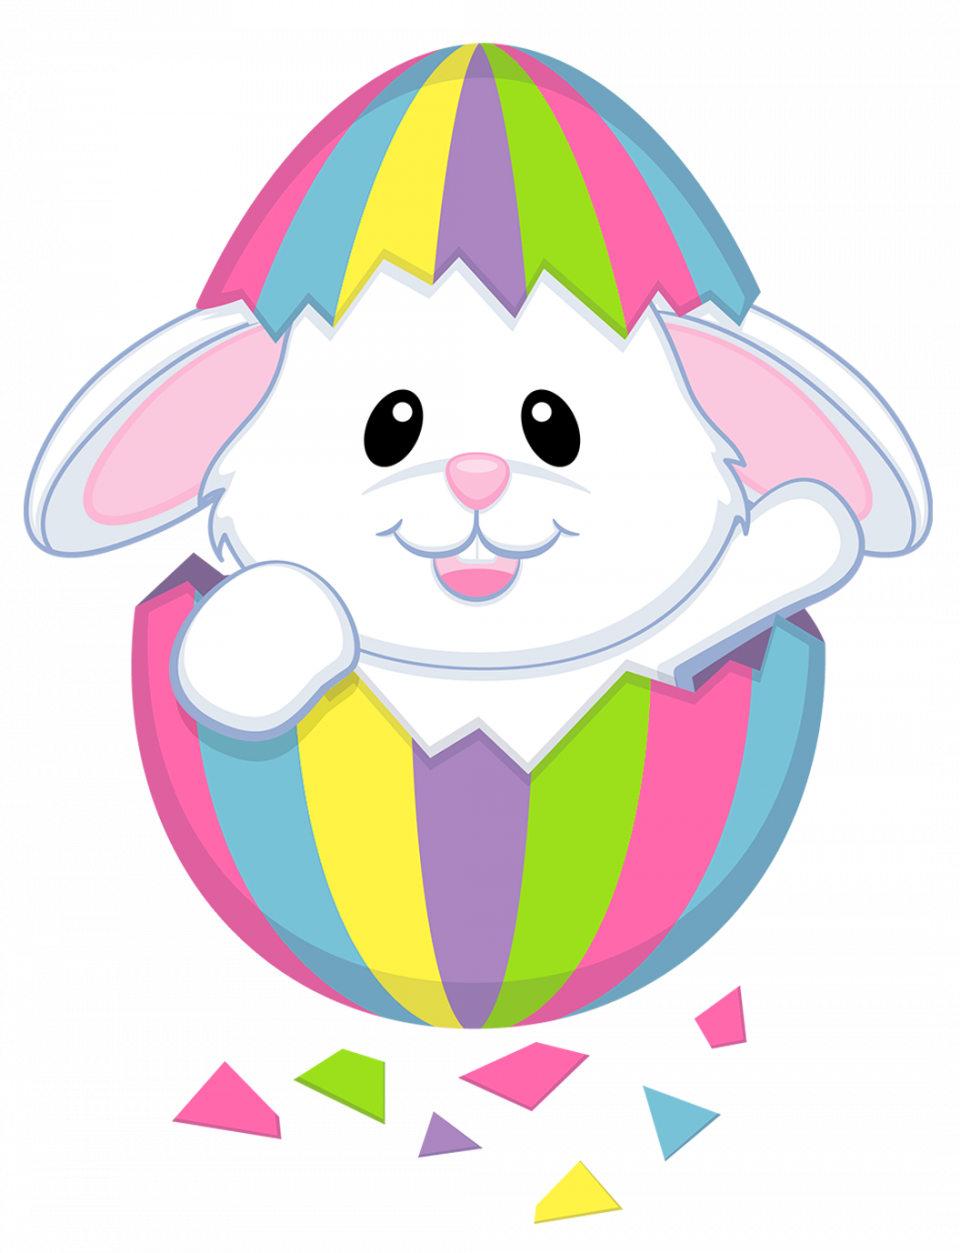 Animated group fabulous image. Moving clipart easter